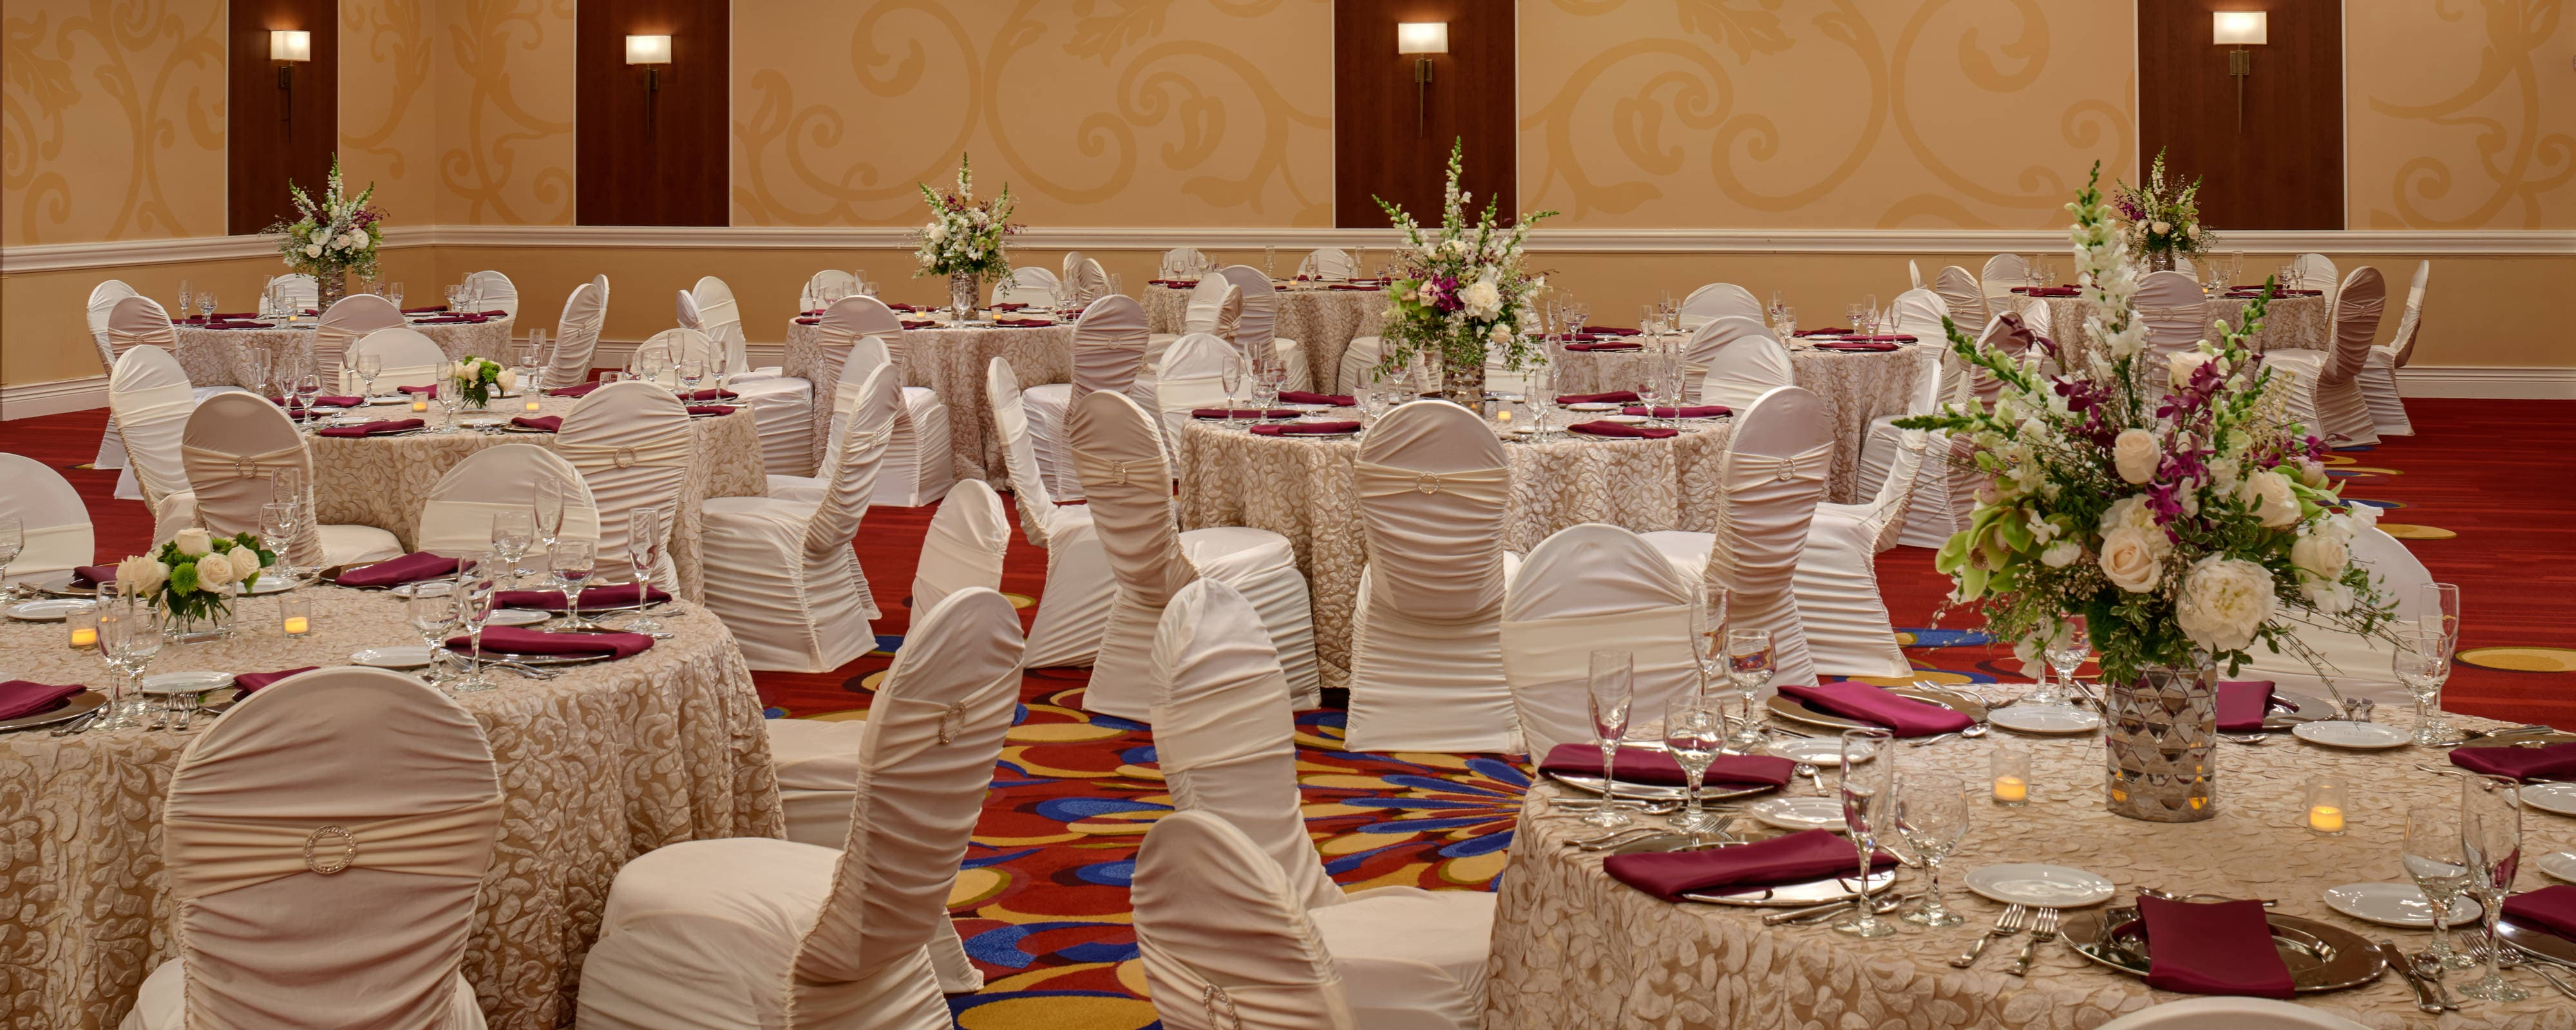 Wedding And Event Venues In Cleveland Ohio Cleveland Airport